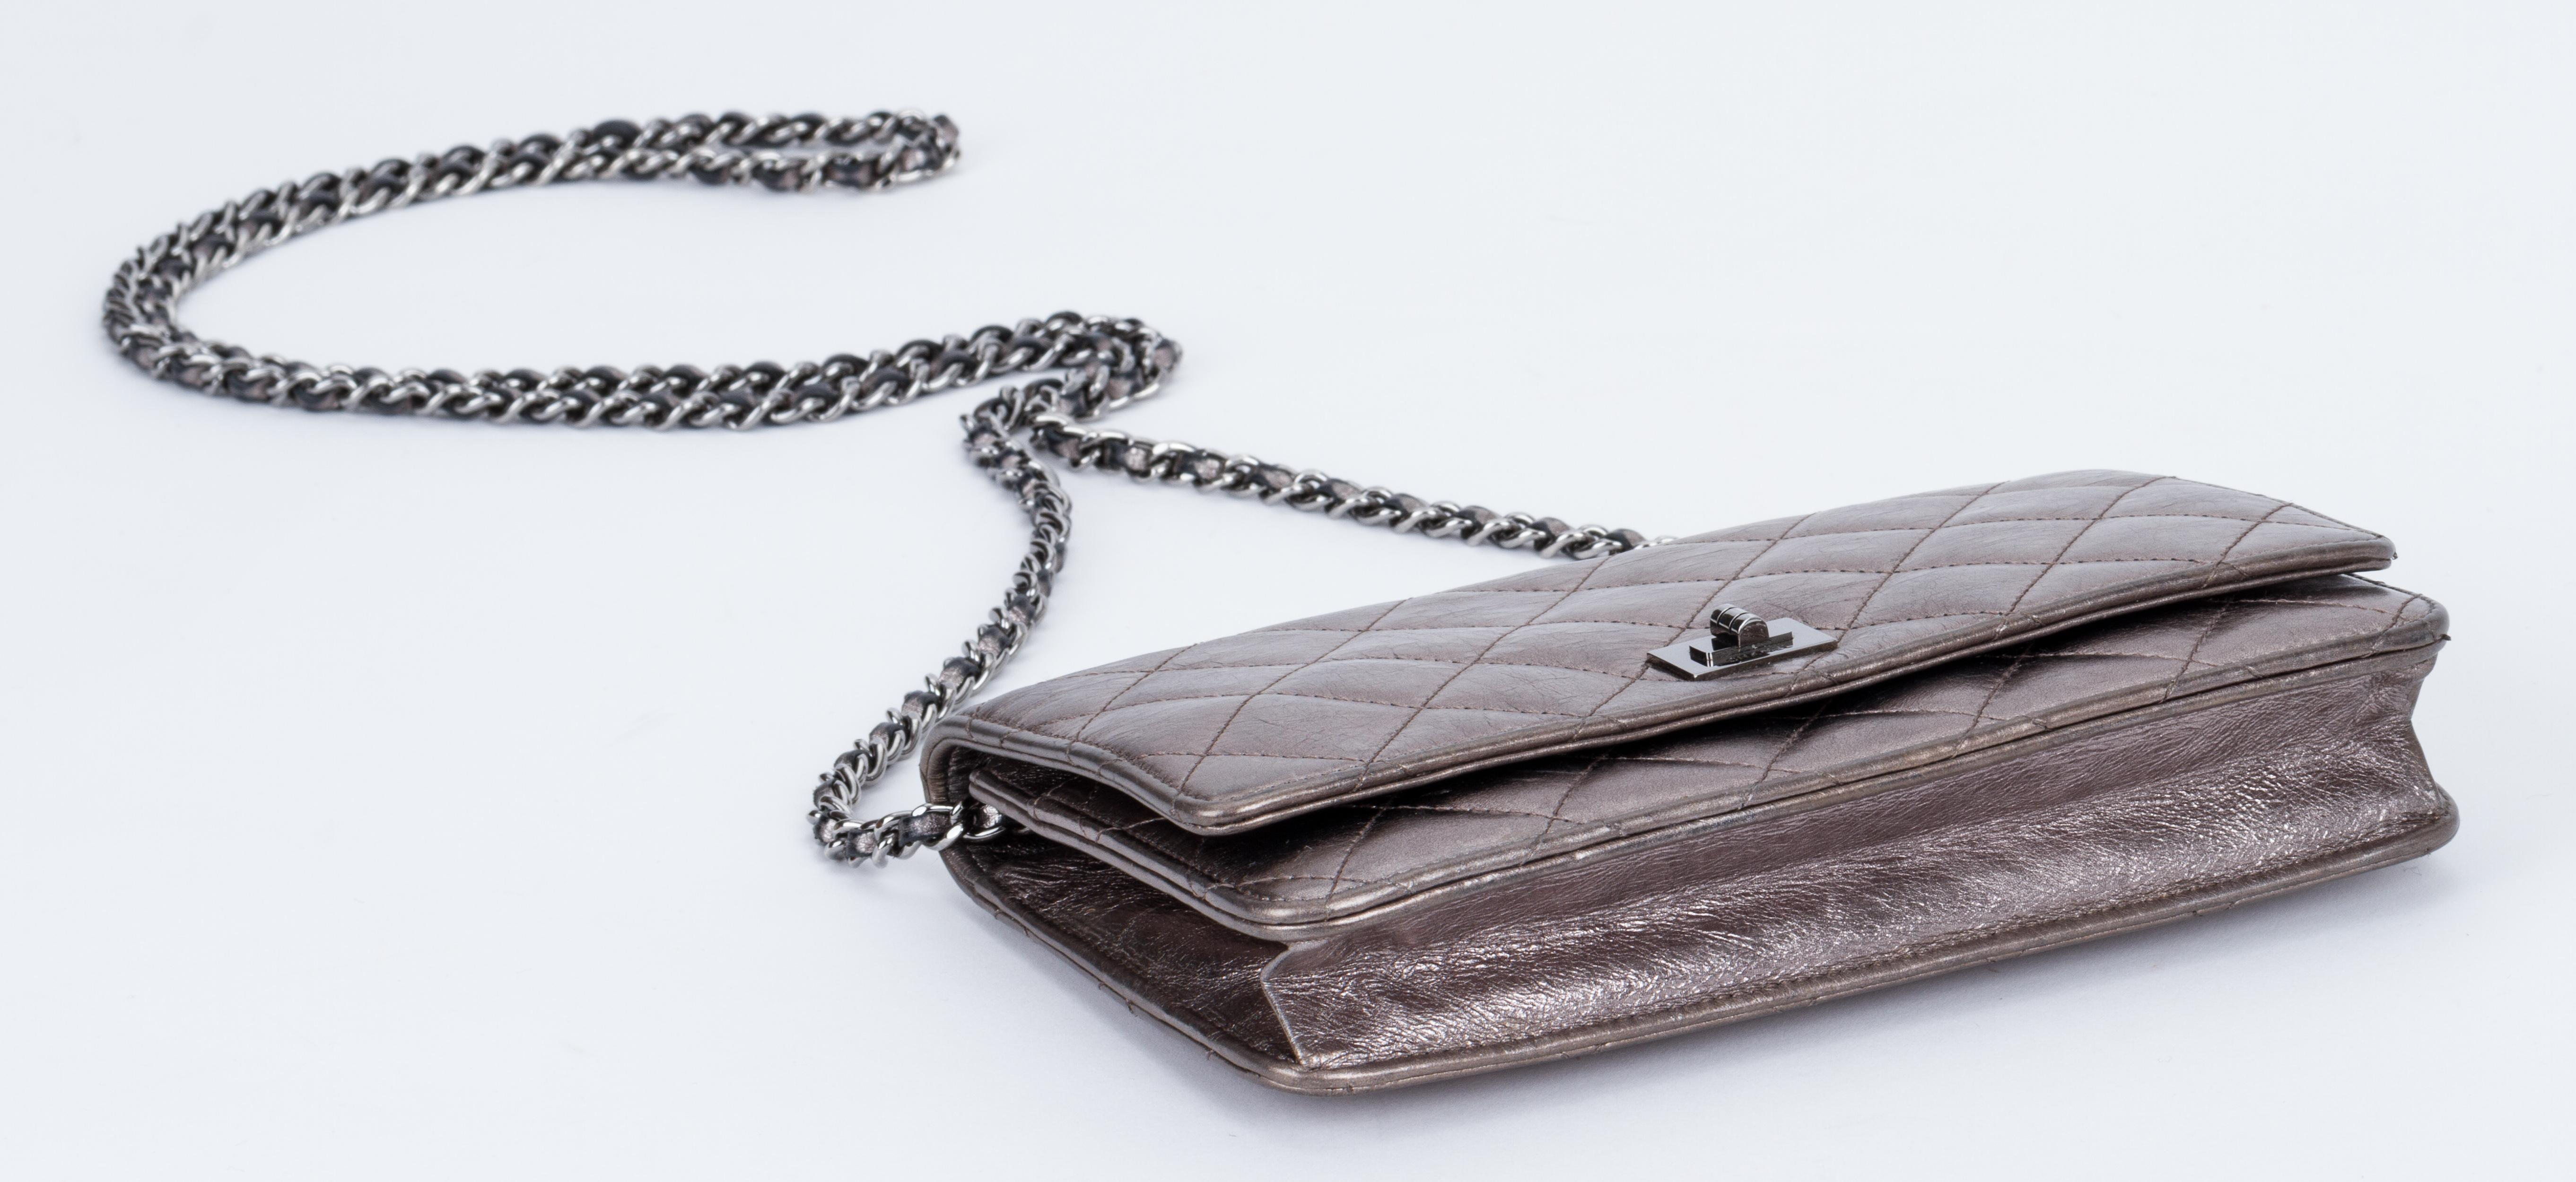 d050257a59c2 Chanel Reissue Pewter Wallet On A Chain Crossbody Bag at 1stdibs